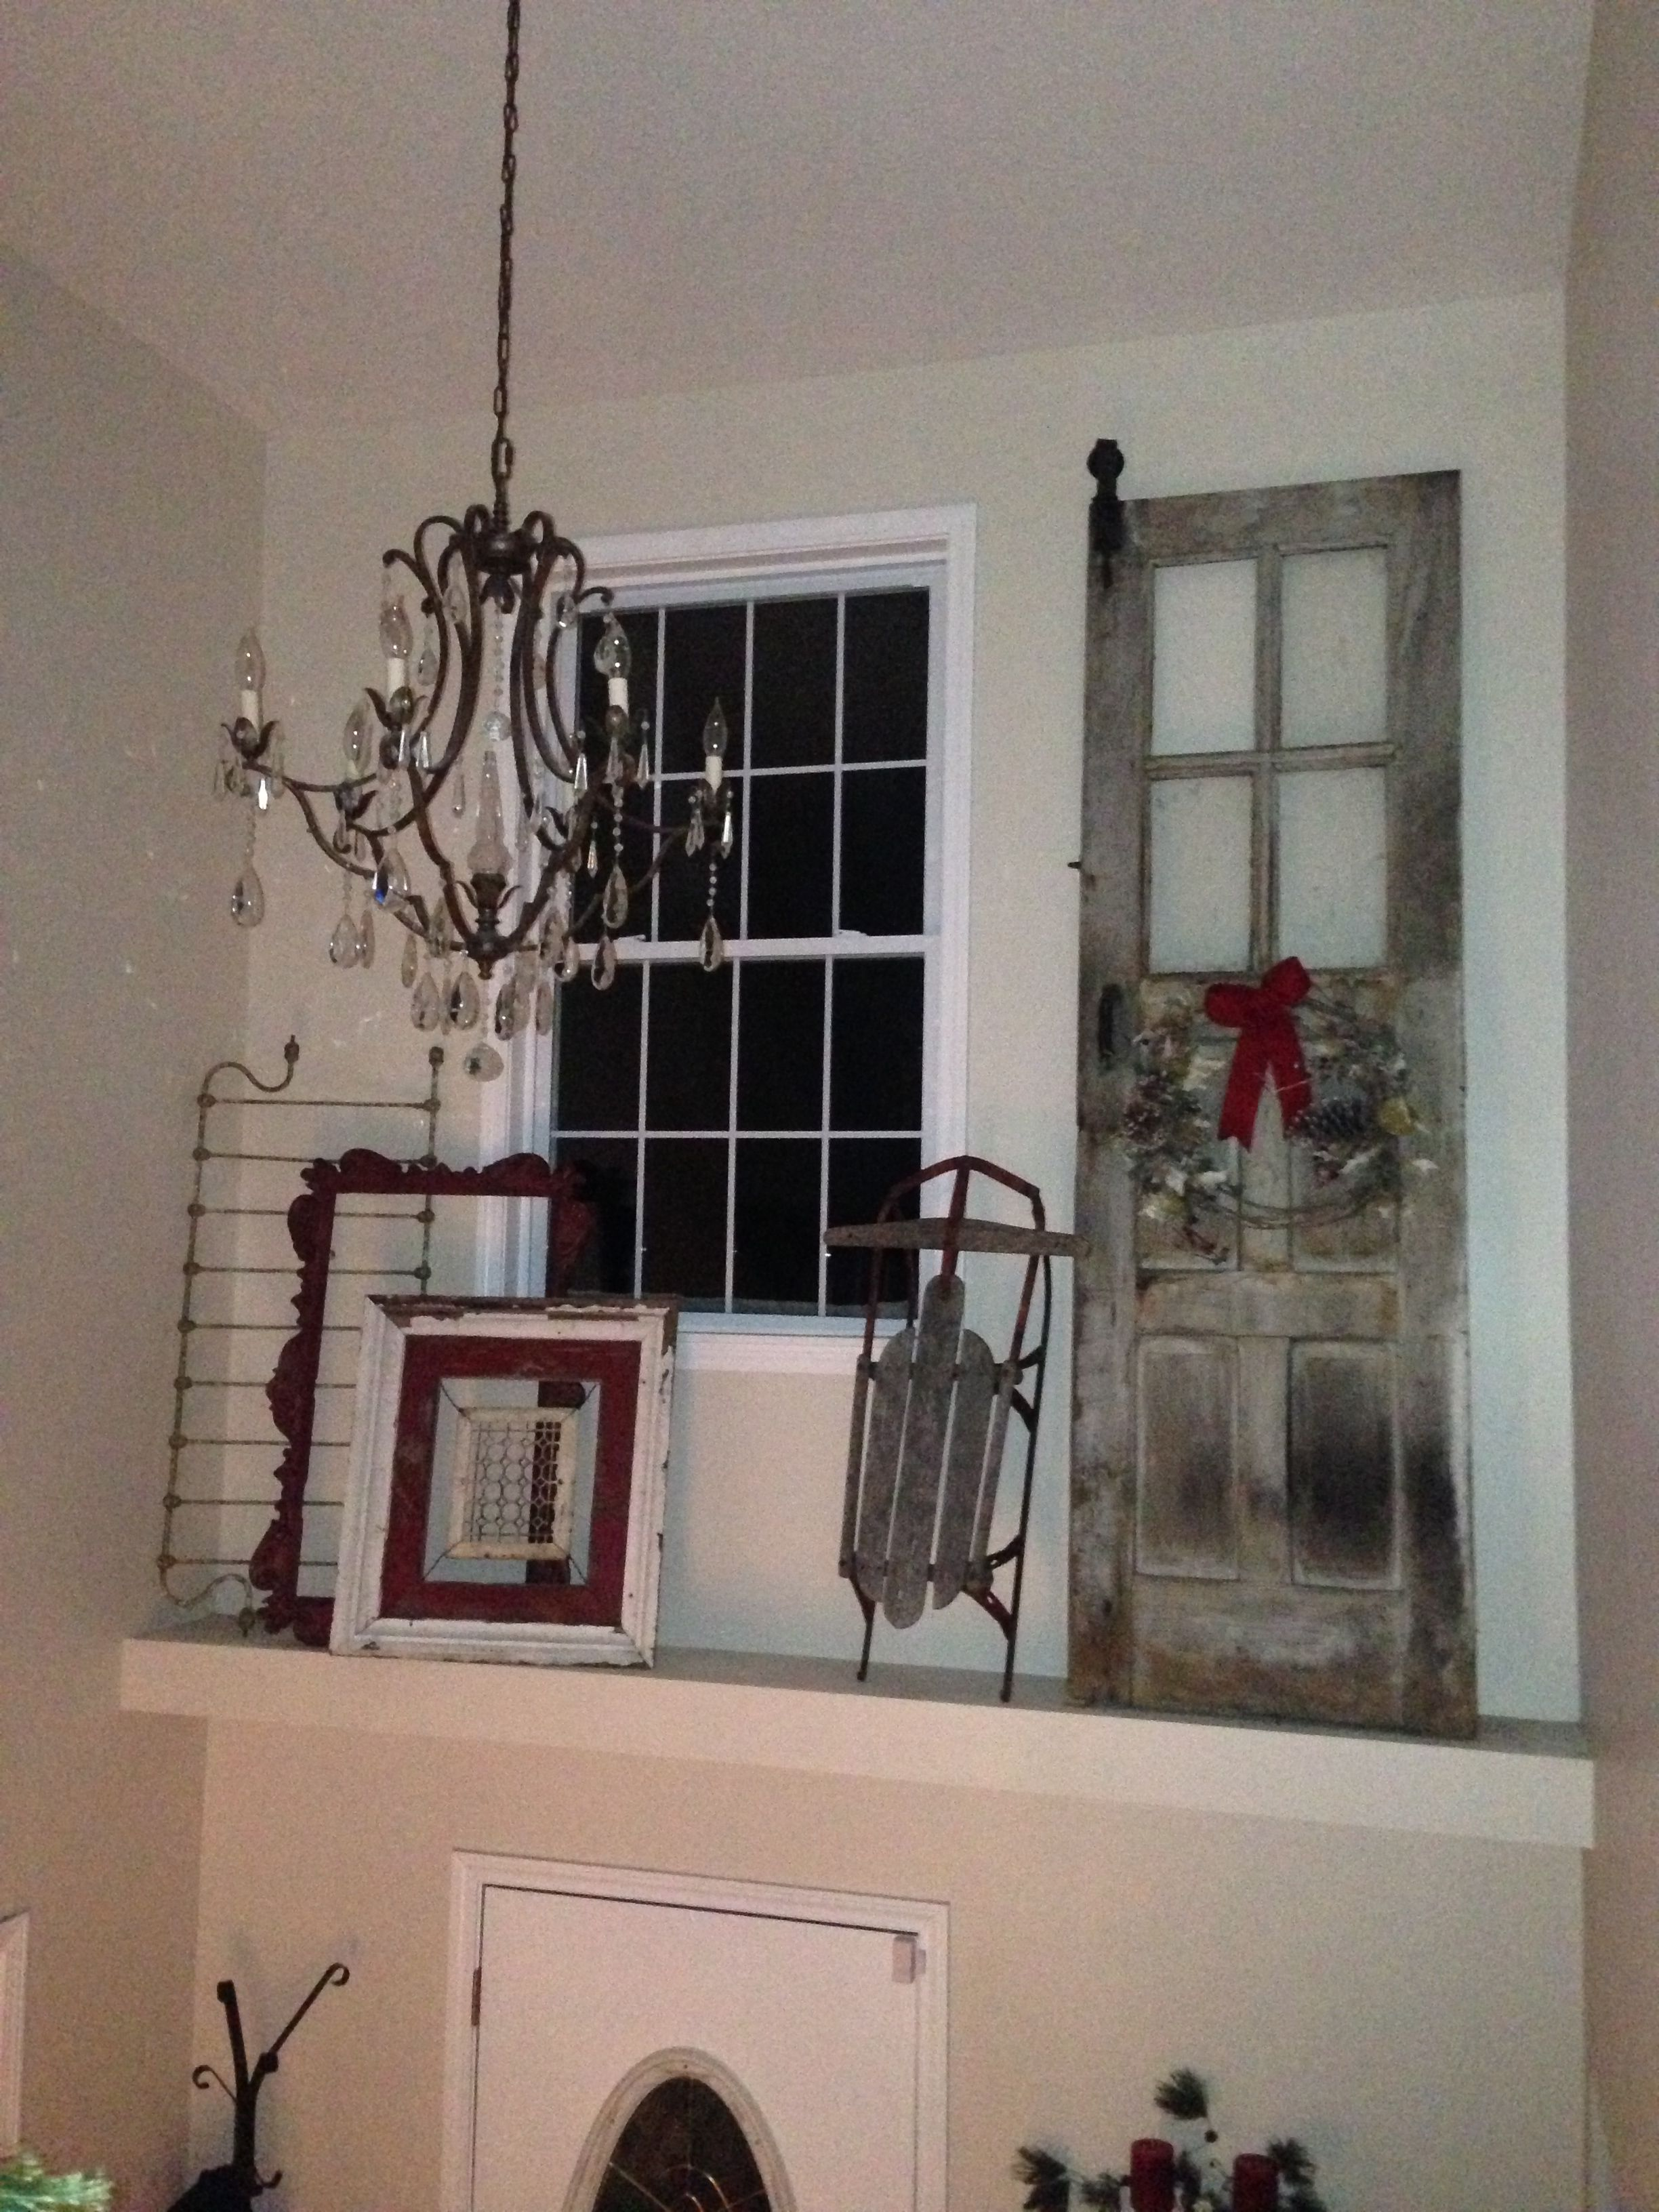 Rustic christmas ledge decor just love decorating with old junk projects pinterest Home decorating ideas using junk